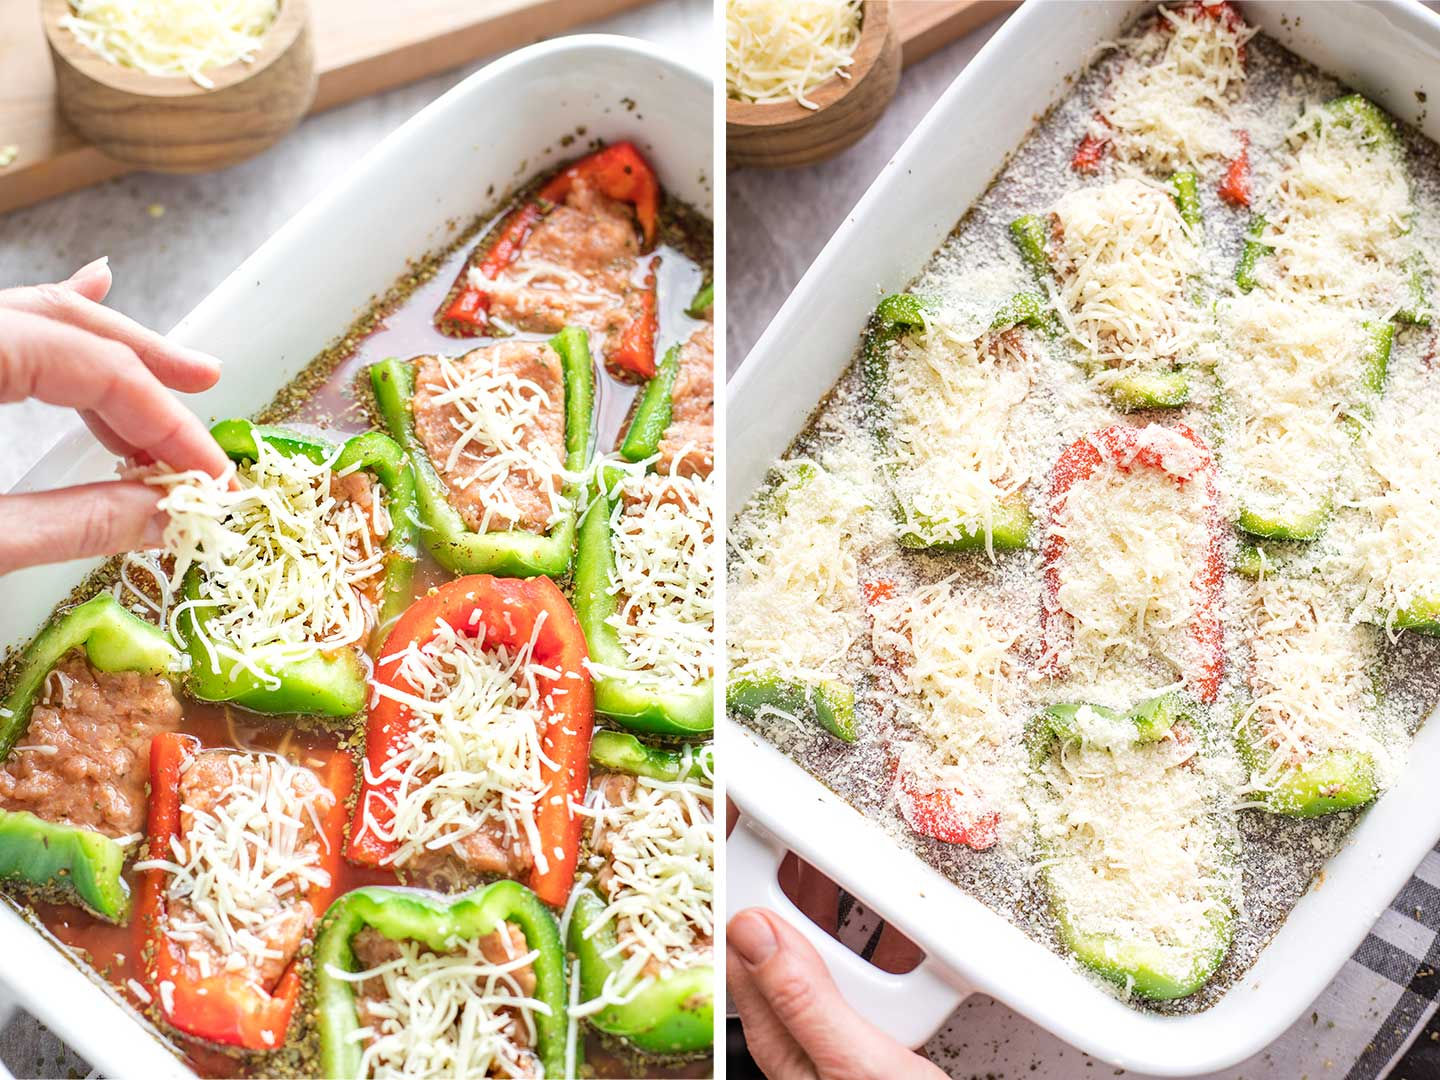 Collage of two method photos showing how to sprinkle some cheese on just the stuffed peppers, and then sprinkle parmesan over the entire casserole.